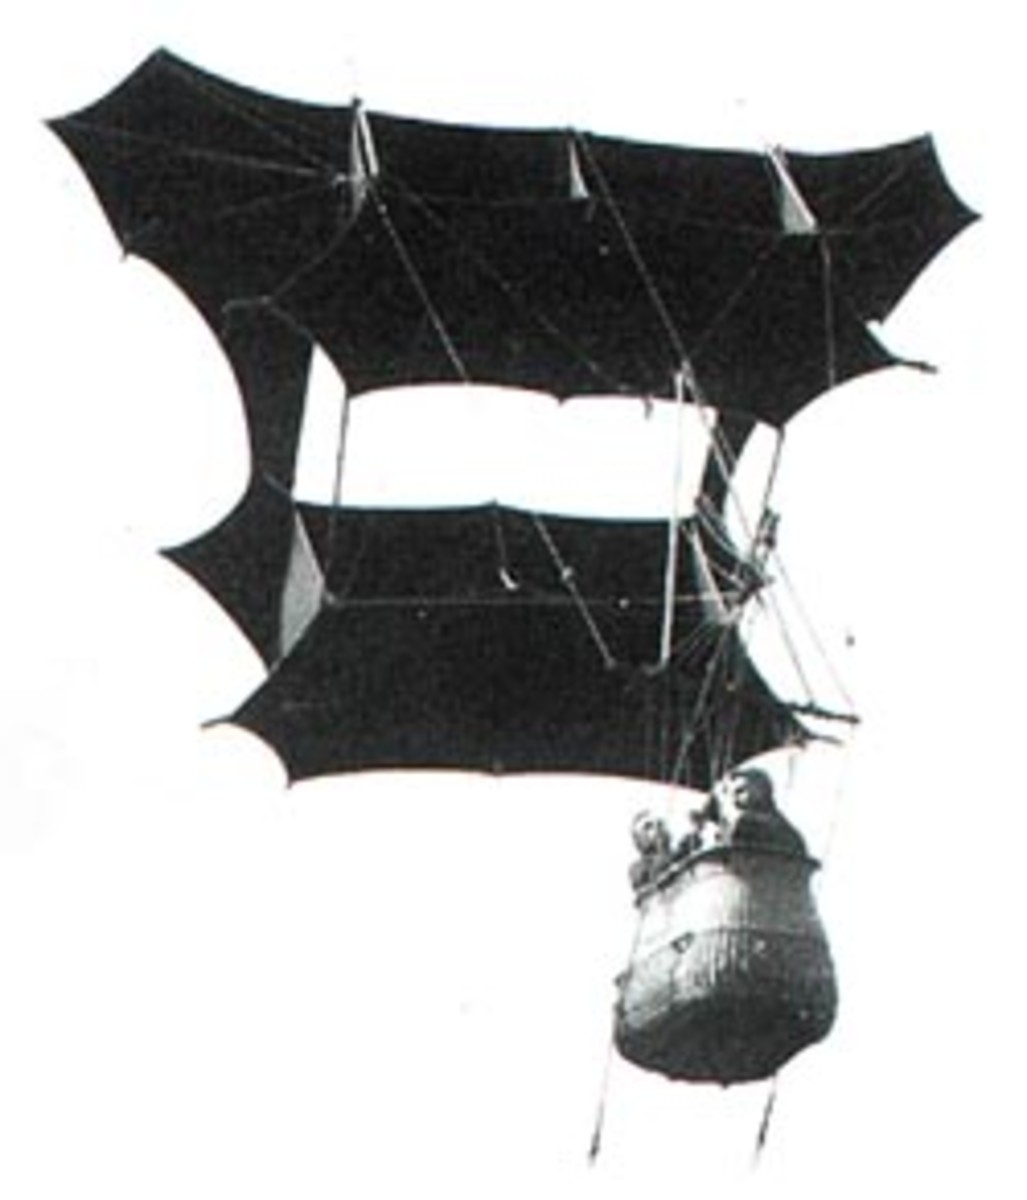 A Picture of Samuel Cody's Manlifting Kite